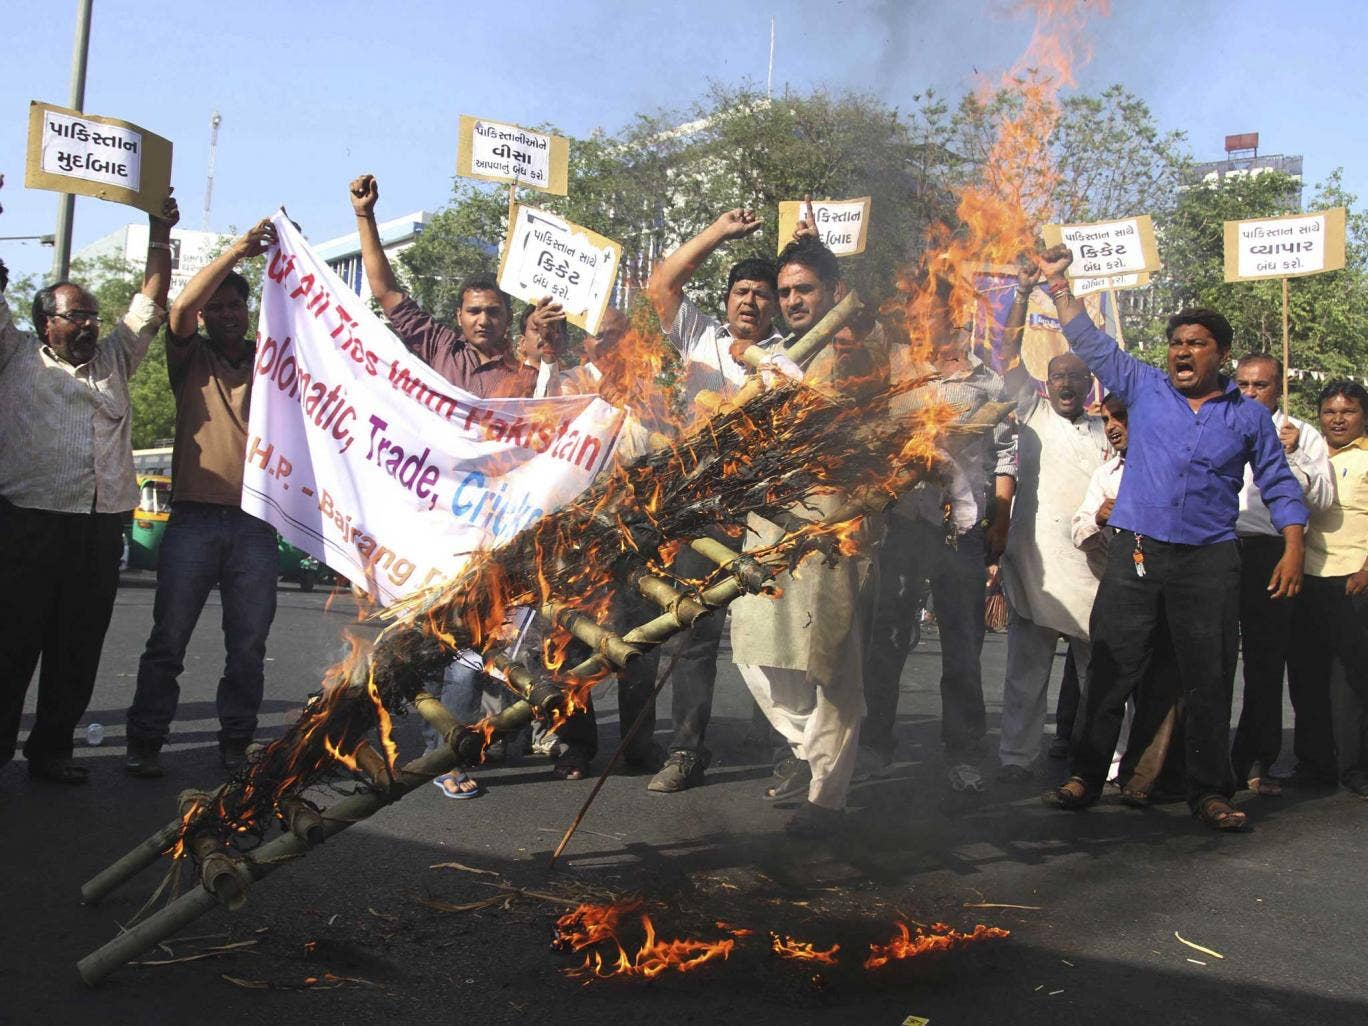 Indian activists of right wing Hindu groups burn an effigy representing Pakistan after Sarabjit Singh, a convicted Indian spy who was on Pakistan's death row, died from a head injury